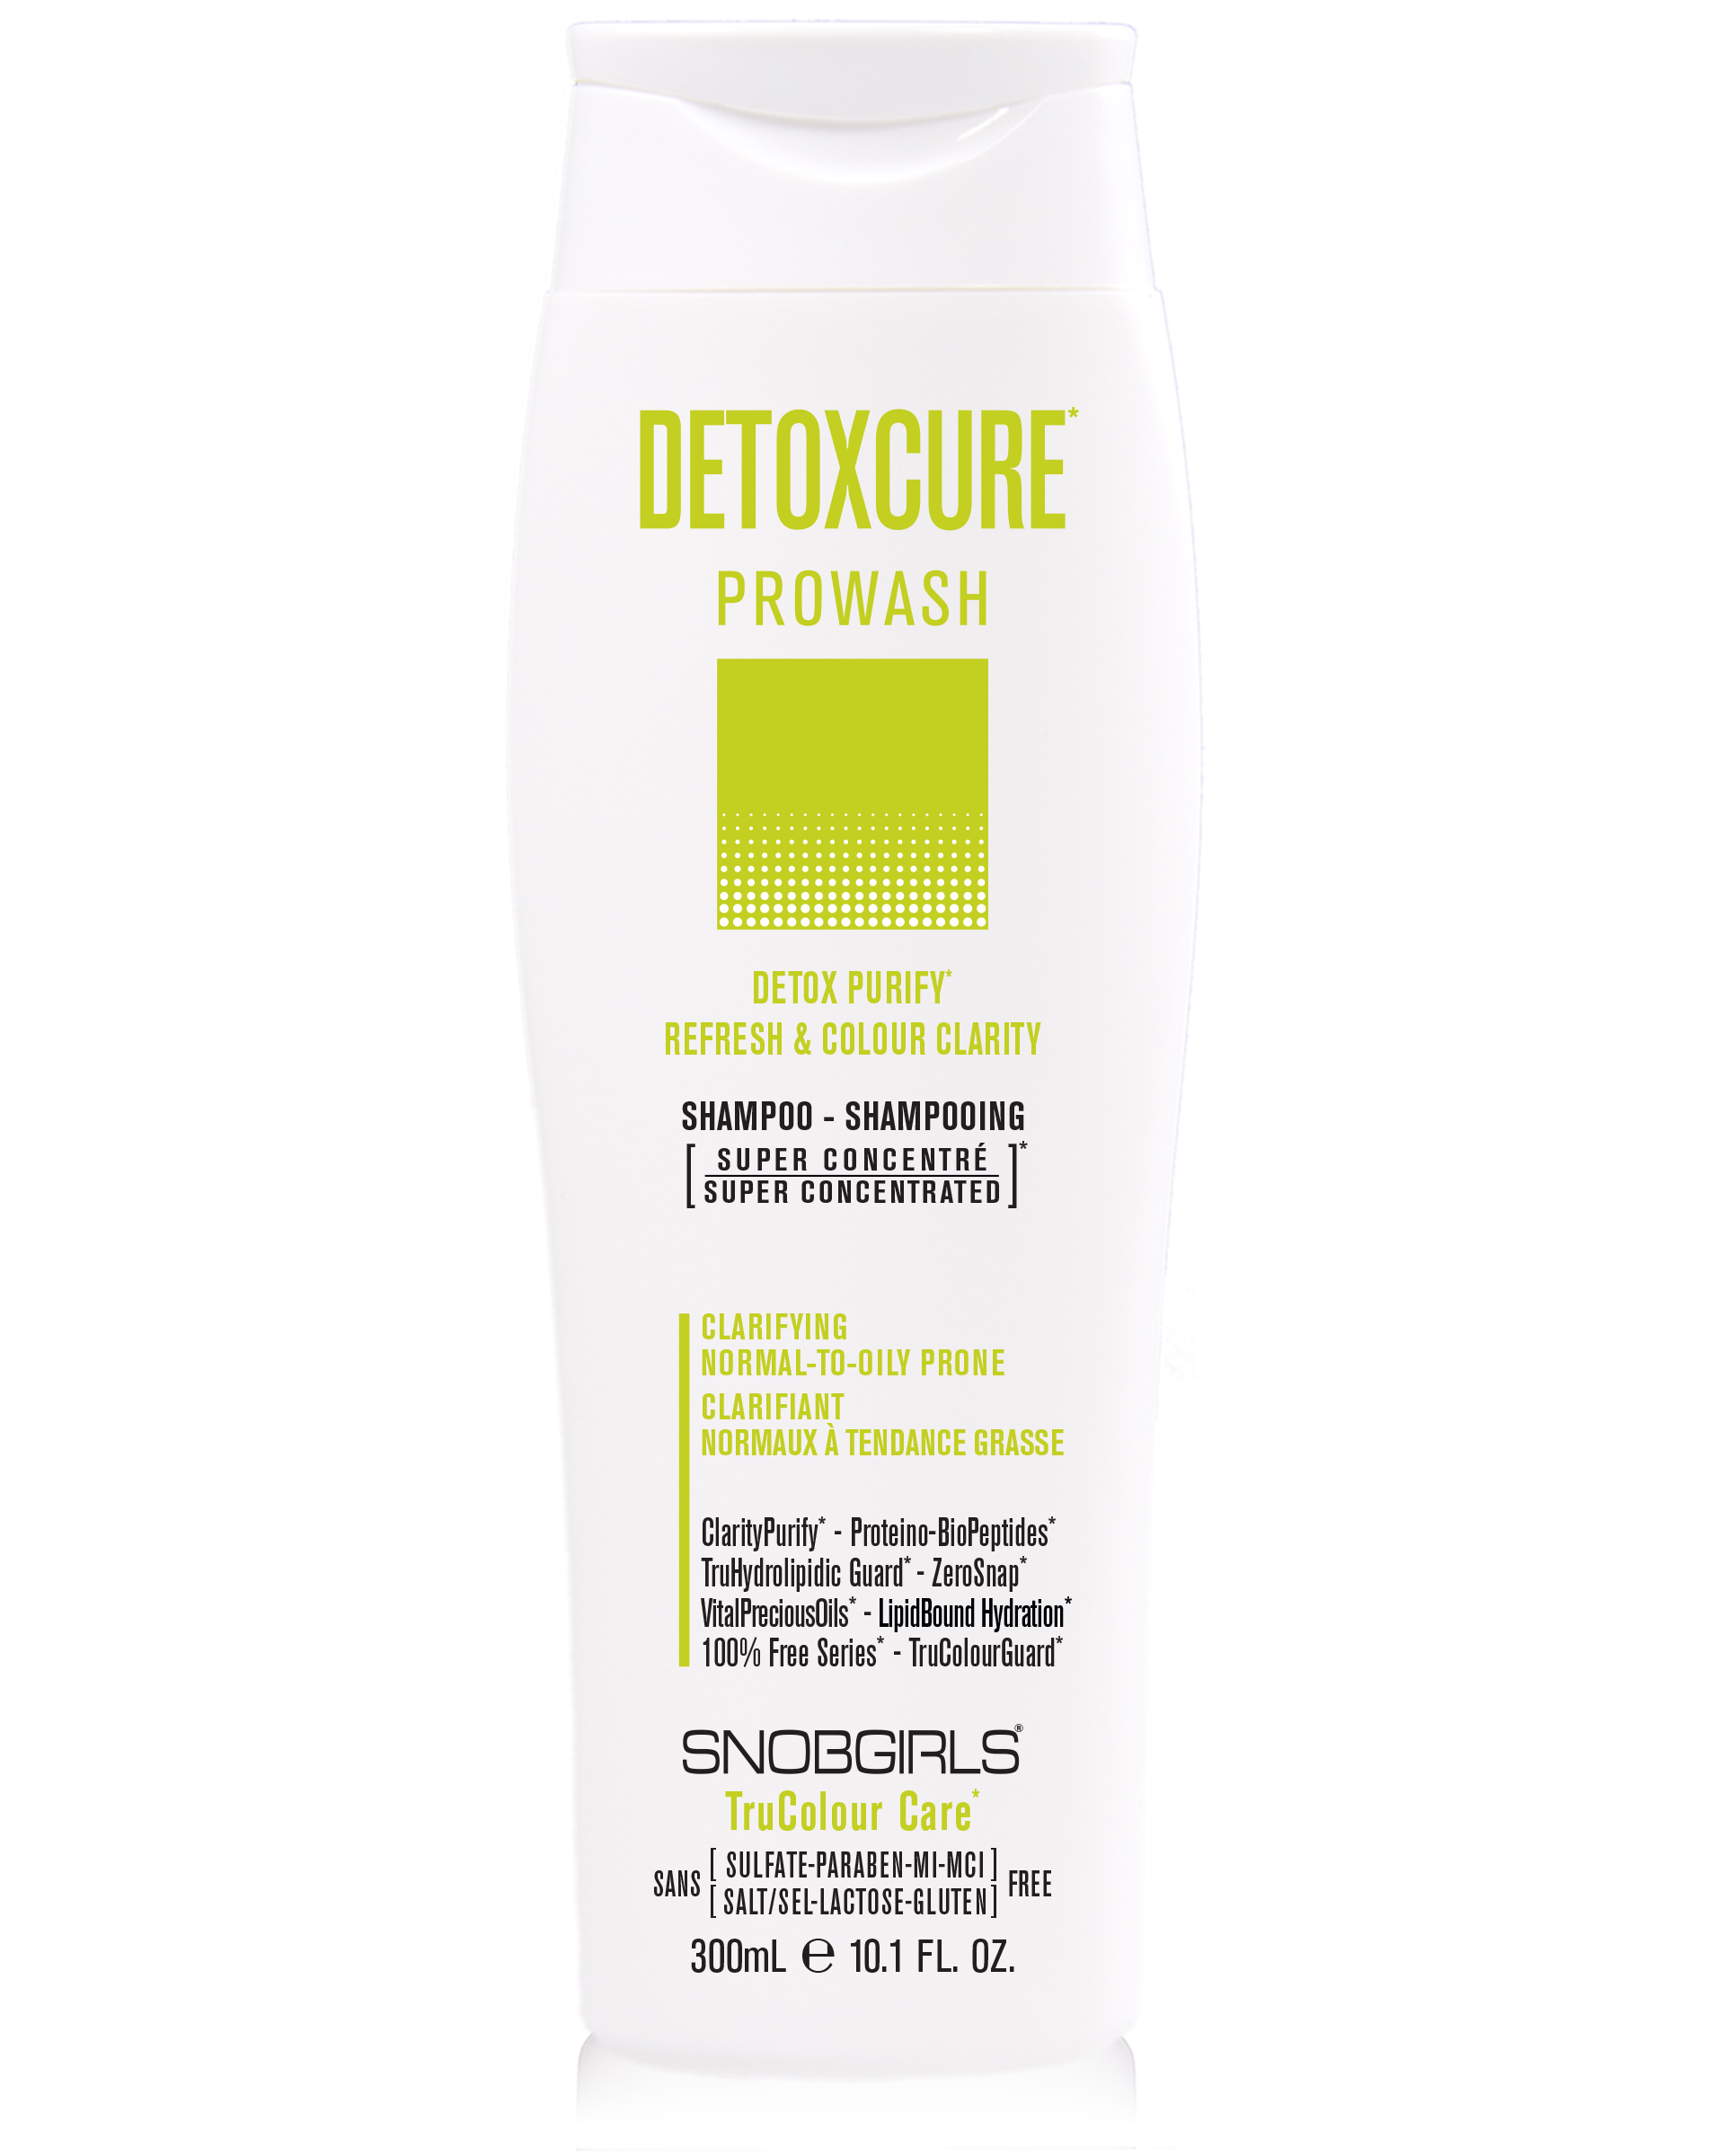 DETOXCURE Detox Purify - Colour Clarity Prowash (shampoo) - SNOBGIRLS.com